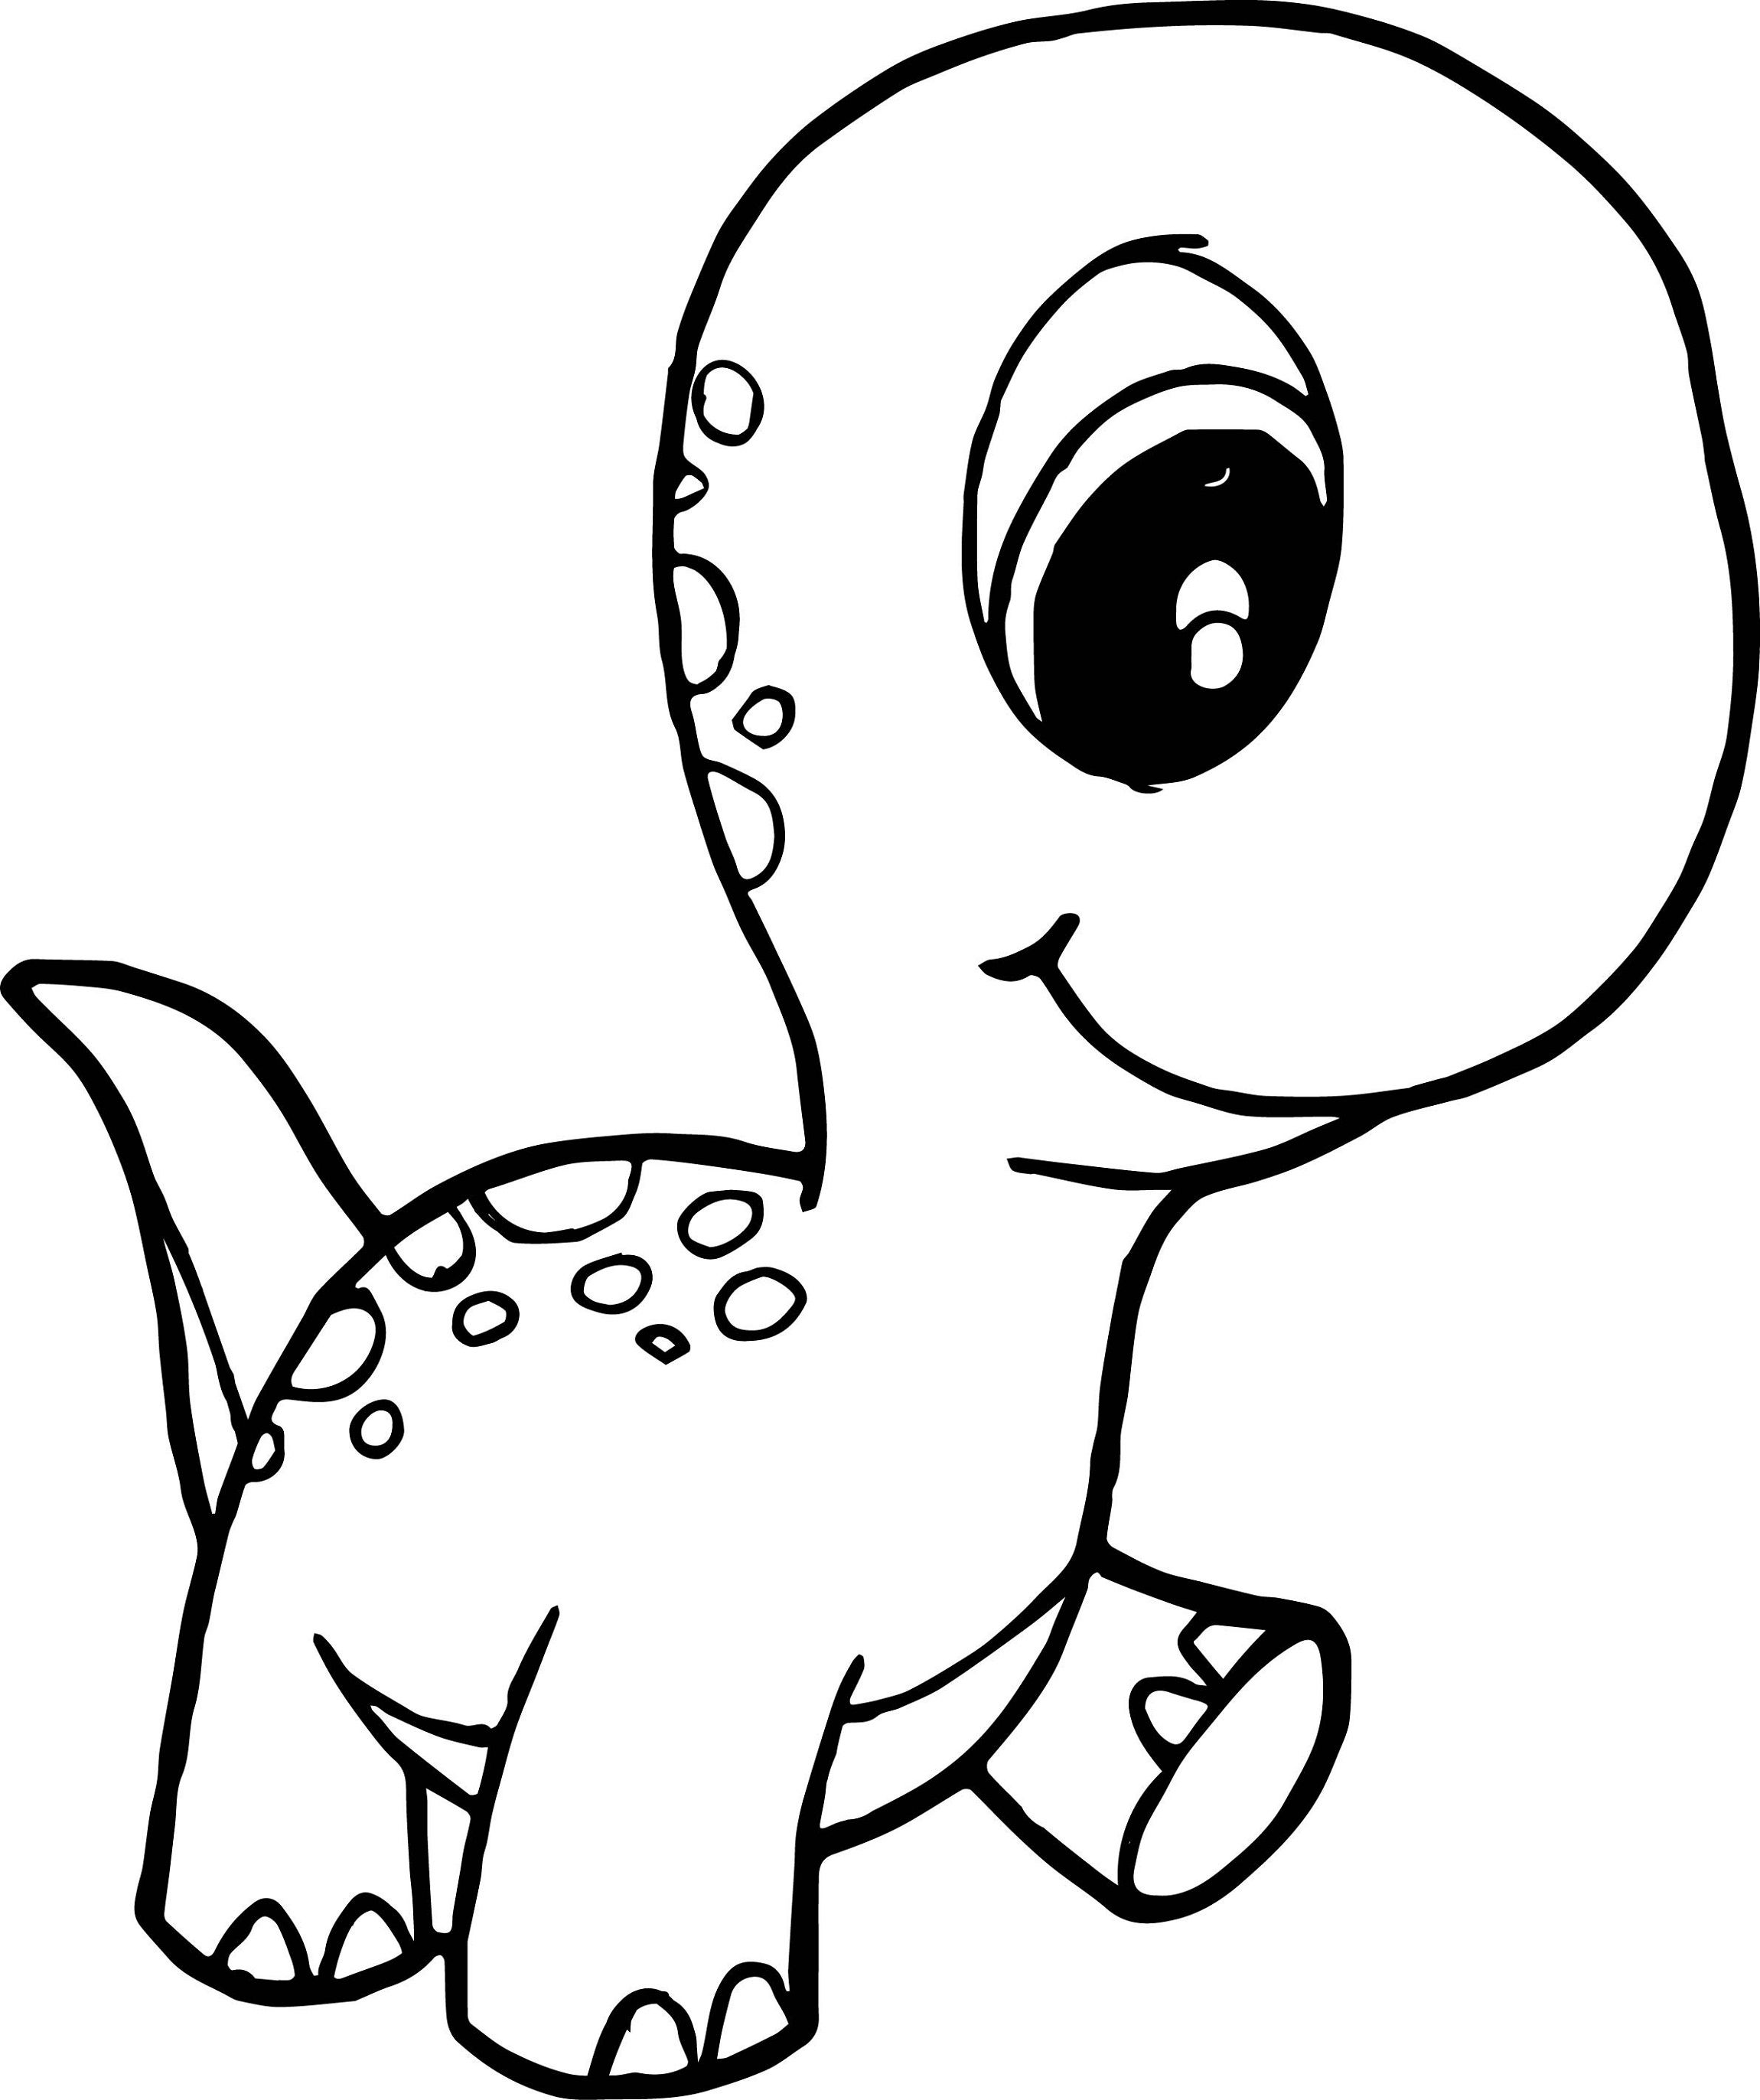 cute baby animal coloring pages cute baby animal coloring pages to print coloring home cute animal baby pages coloring